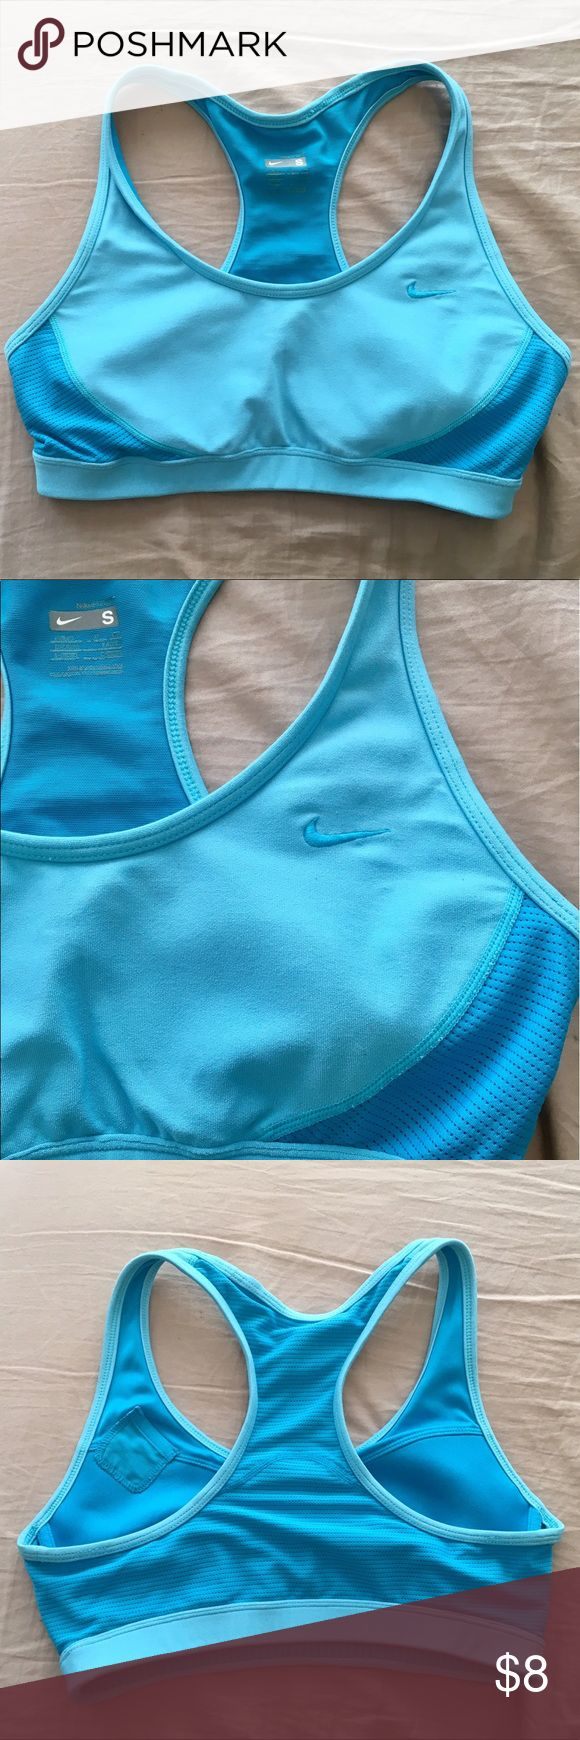 Nike FIT DRY sports bra, size S Two-tones blue sports bra by Nike. Used but still in great condition! From a pet-free and smoke-free home. Nike Intimates & Sleepwear Bras